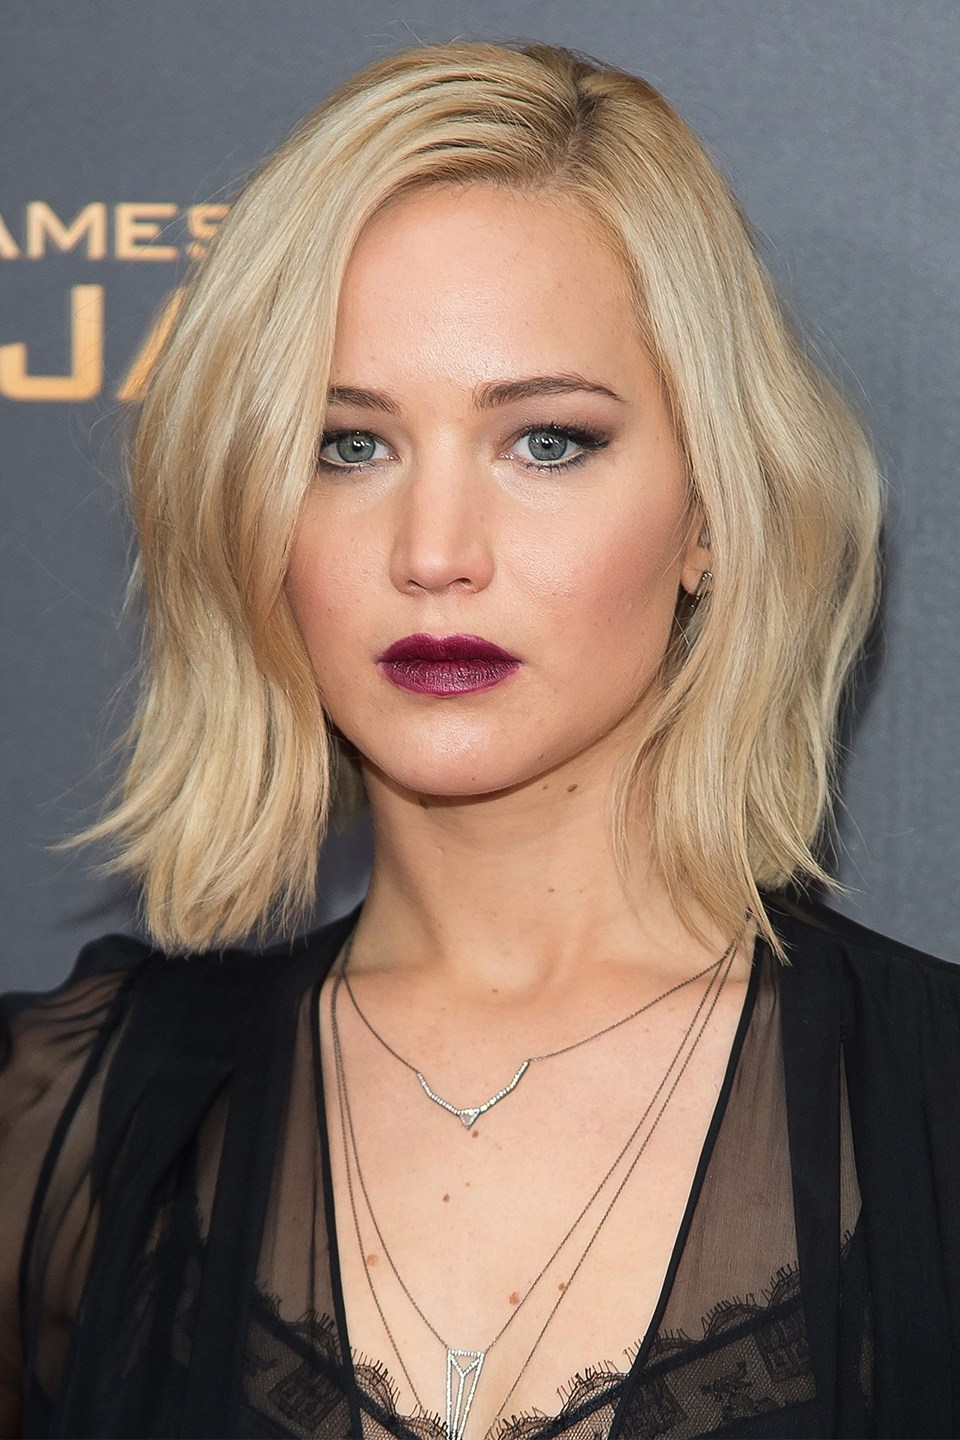 THE BERRY LIP TREND - The Grown Up Edit.jpg